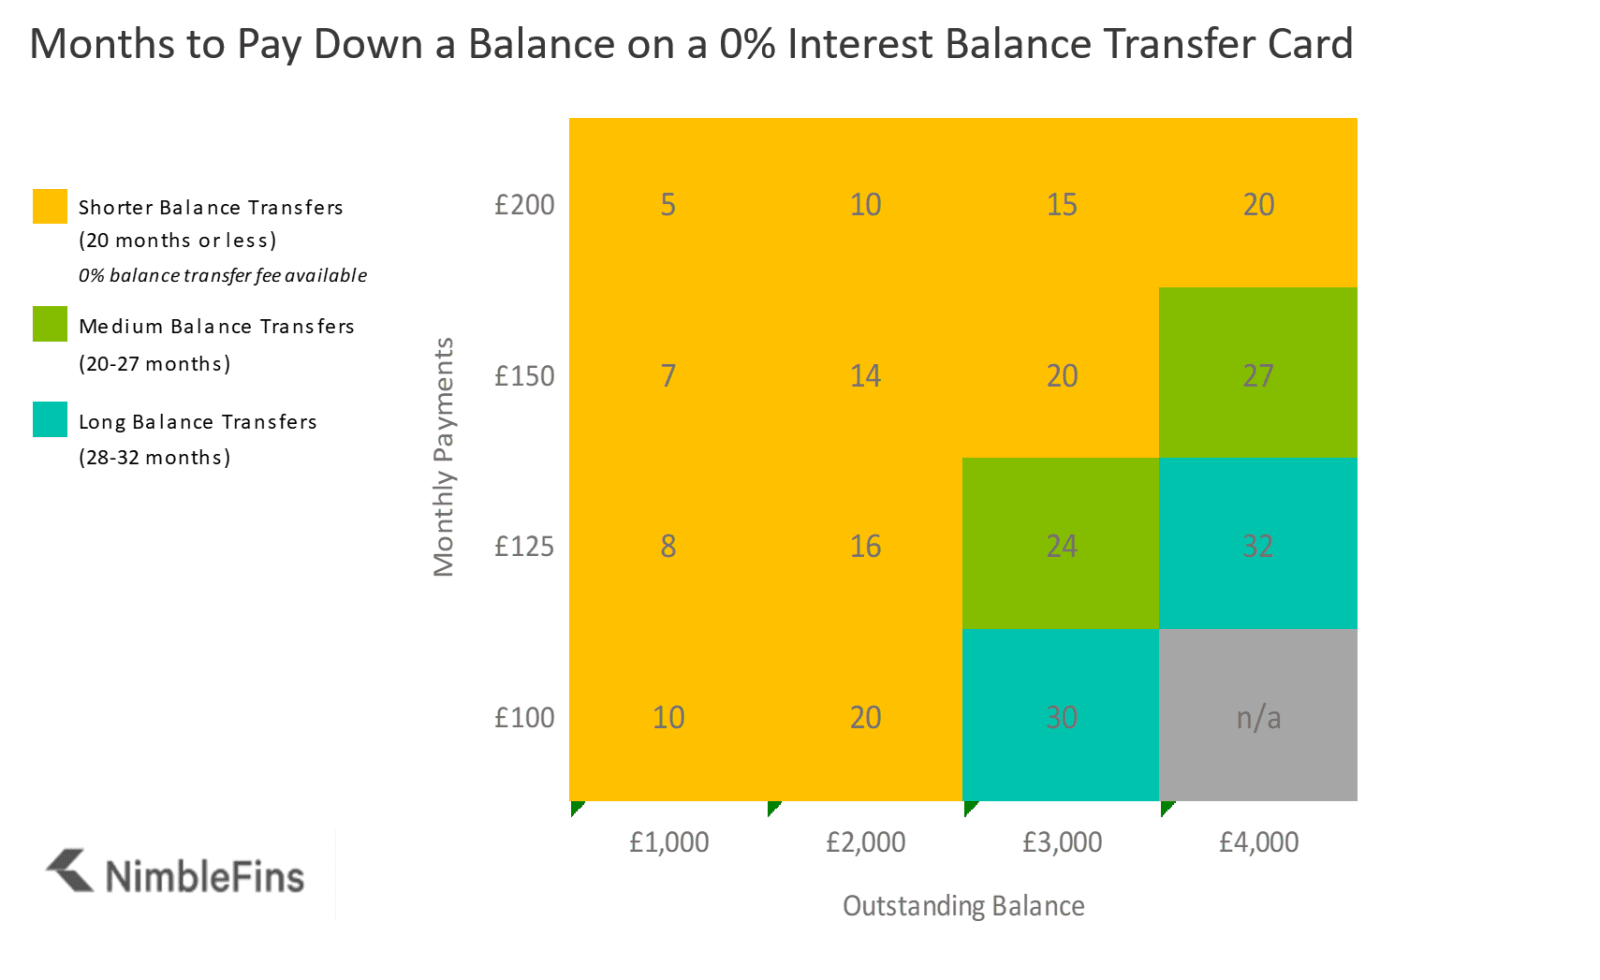 Showing how many months it will take to pay back a balance, given the monthly payments. This information is used to determine the duration of the best balance transfer offer for you.